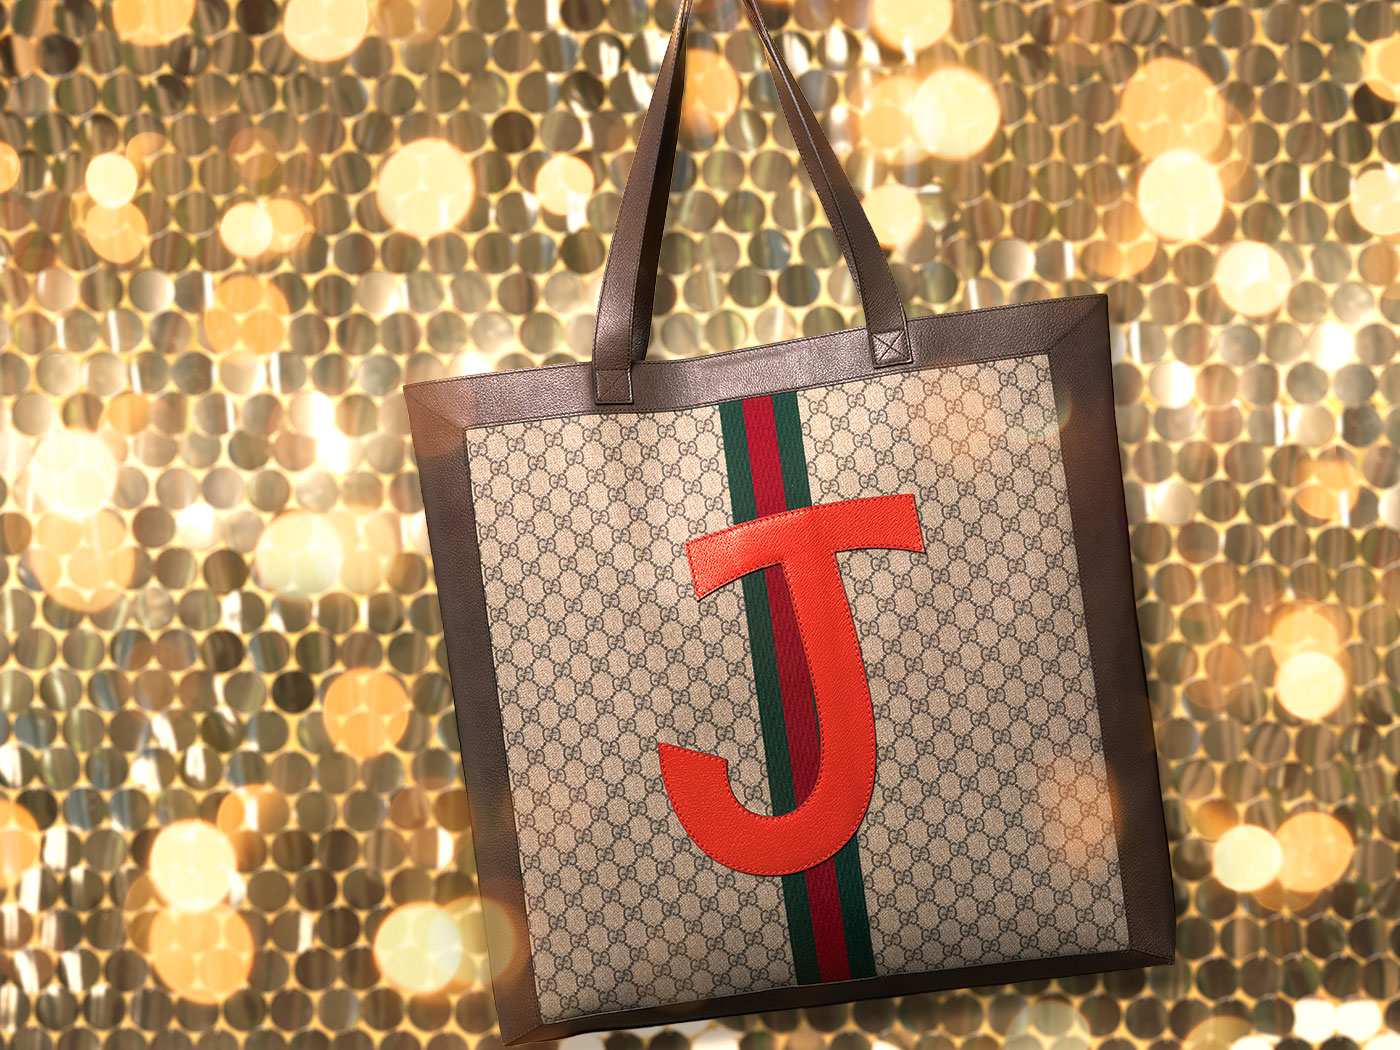 fd2b1668c But if you can't go in person, Gucci.com launched its #GucciDIY service  online so you don't miss out. The bag embodies everything that makes Gucci  so unique ...